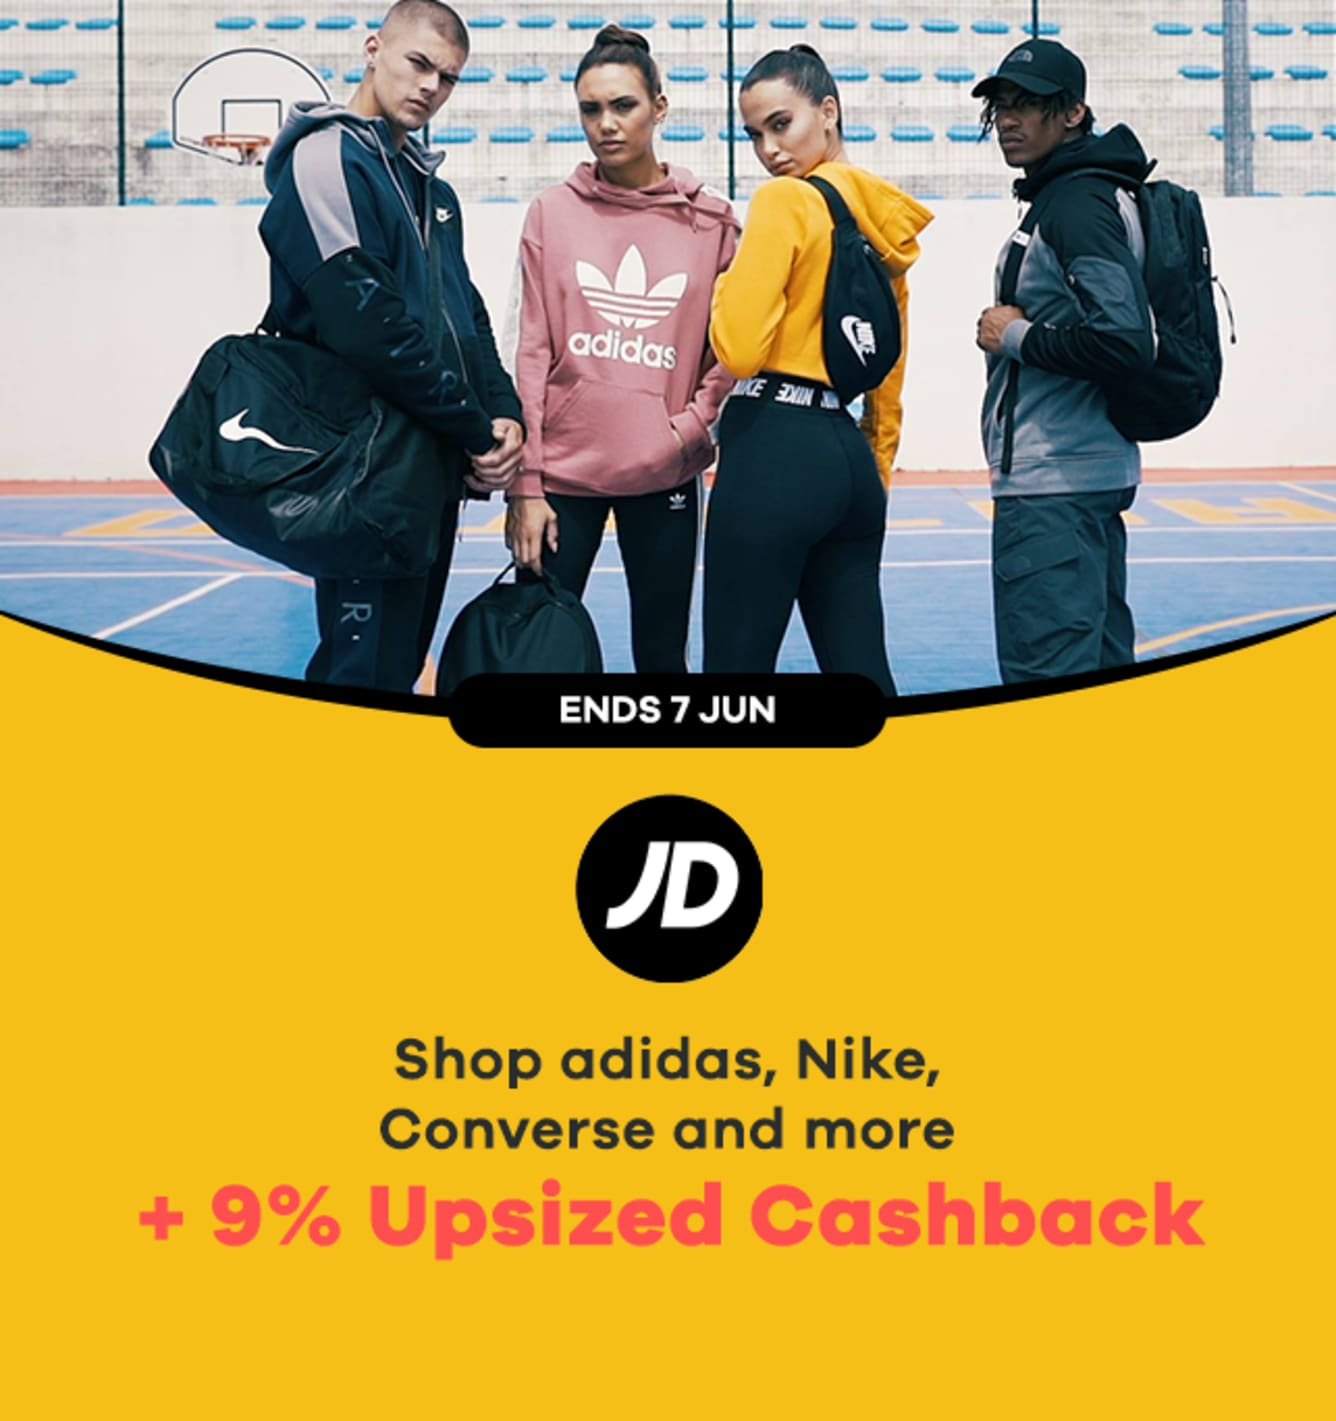 JD Sports: 9% Upsized Cashback